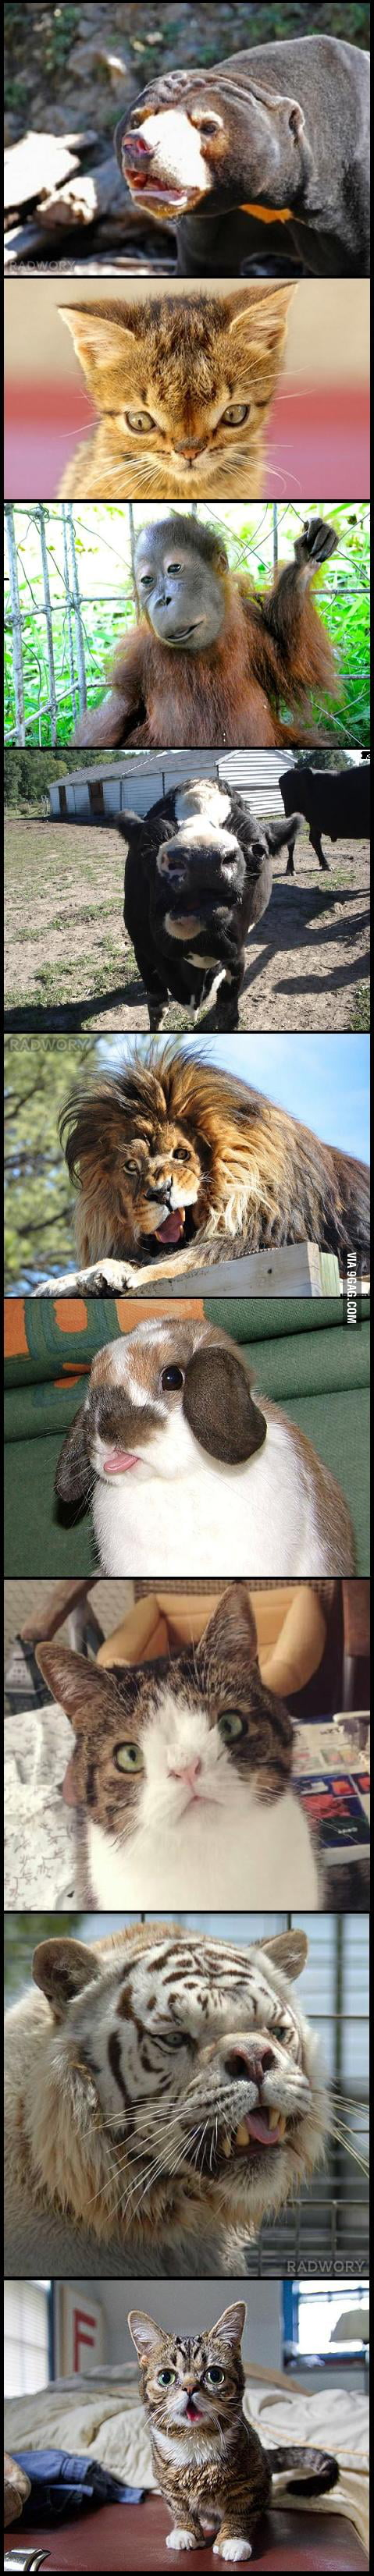 Medium Of Animals With Down Syndrome